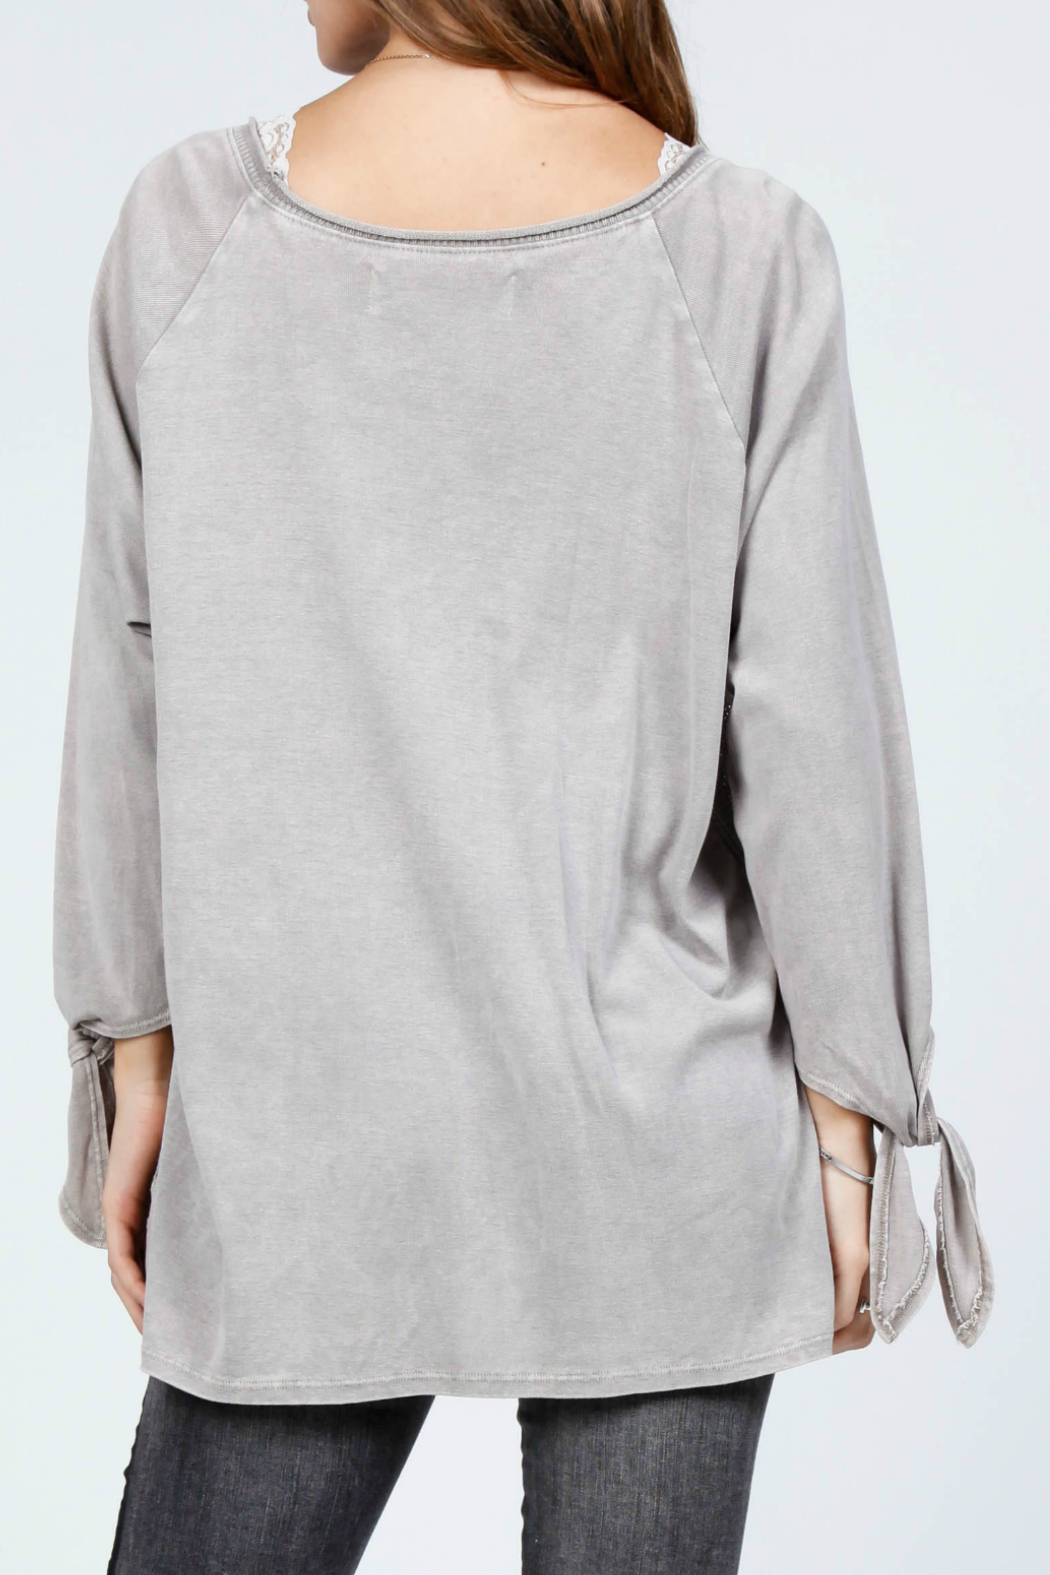 M-Rena  Pointelle sweater top - Front Full Image